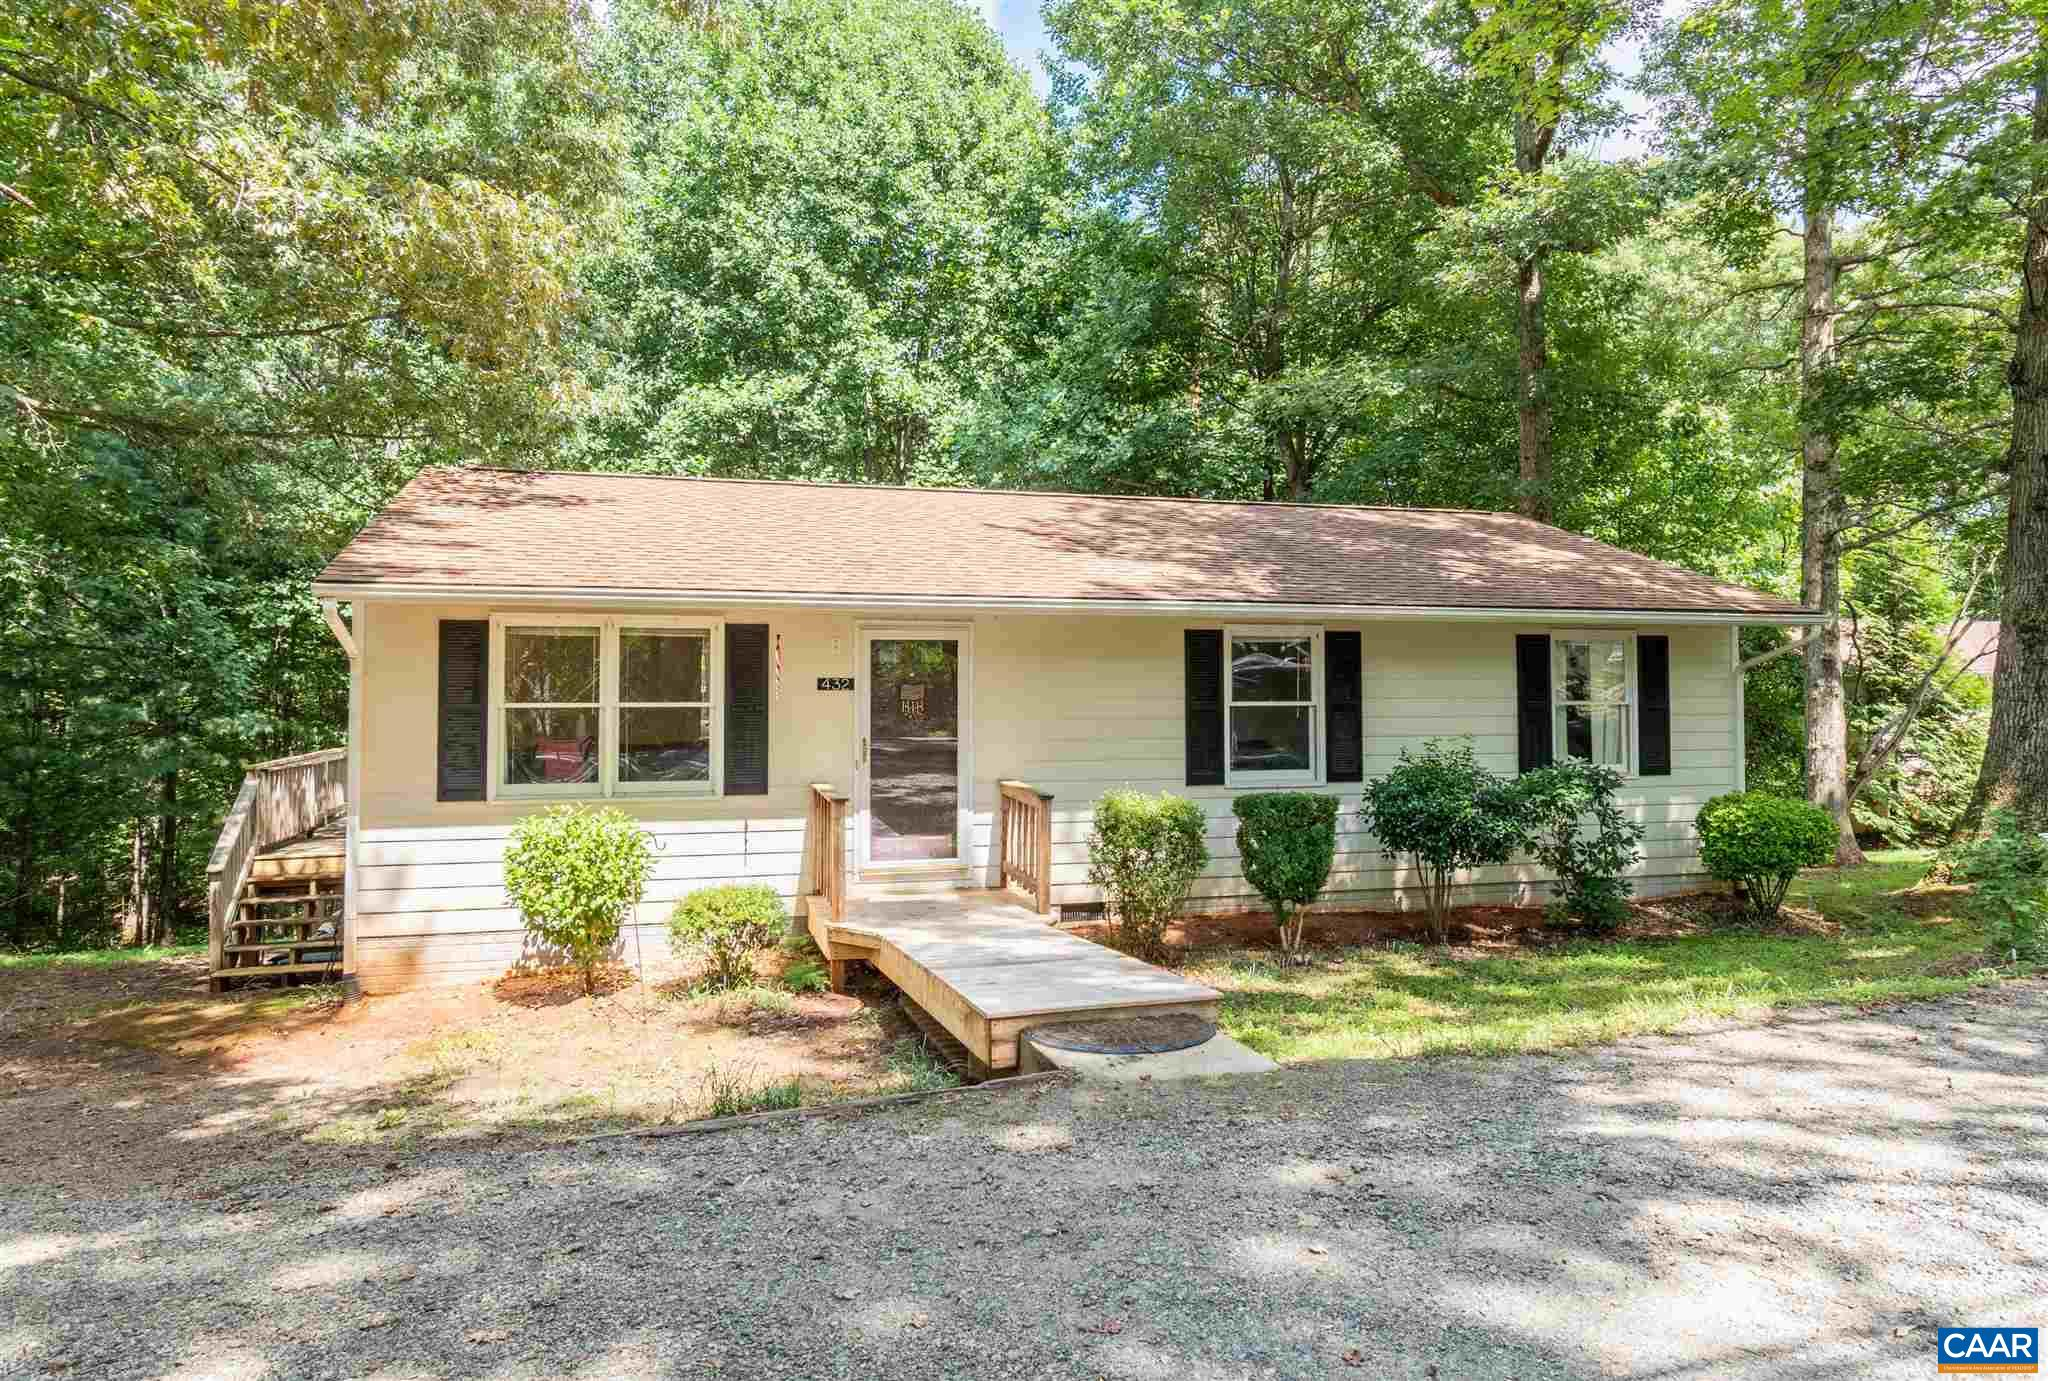 This move-in ready, one-level house sits on a nearly one-half acre lot on a quiet, tree-lined street. Built in 1991, this lovingly-cared for rancher boasts over 1,000 sq ft with 3 bedrooms, 1 1/2 bathrooms, plus an extra room that could be an office, hobby room and/or guest space. The large rear deck overlooks the private backyard bordered by trees along the rear. The deck connects with the kitchen door making it convenient for gatherings with family, neighbors and friends! New HVAC in 2019, architectural shingle roof replaced 12 yrs ago, septic clean-out four-five yrs ago. There is a small storage shed attached at the rear of the house. Convenient to Charlottesville Airport, NGIC/DIA, Madison and Culpepper, and points beyond!